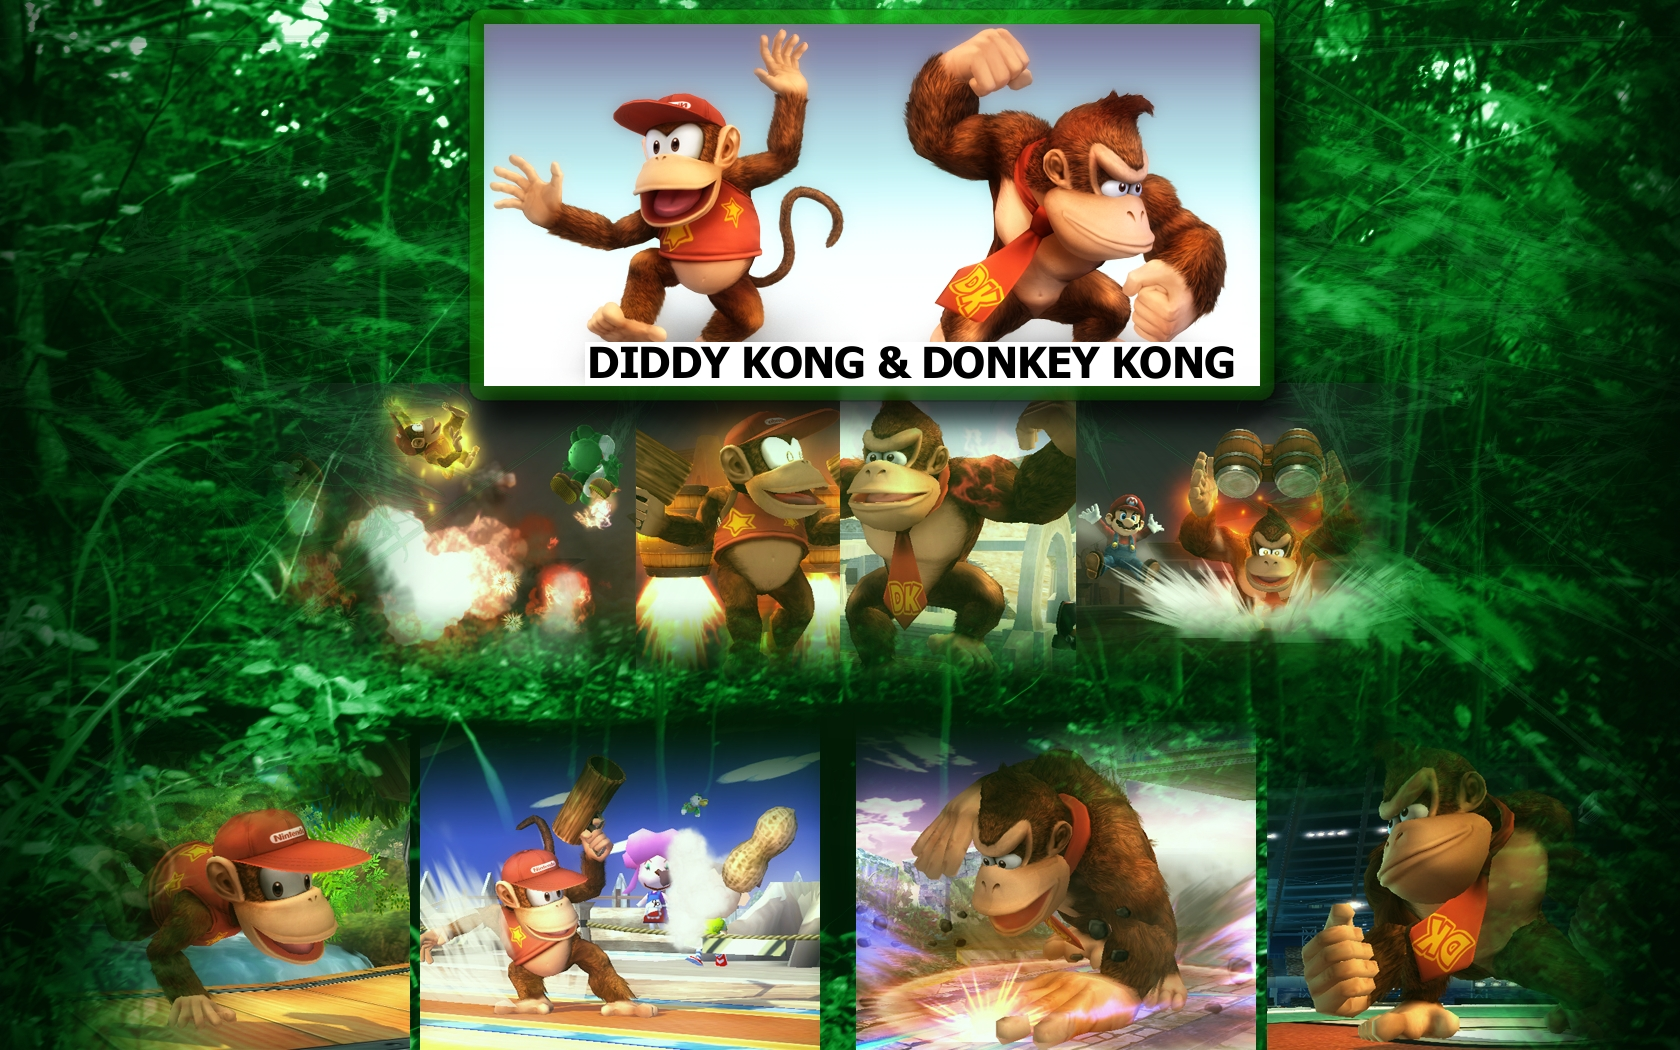 Another in my series of Super Smash bros Brawl wallpapers this time of the